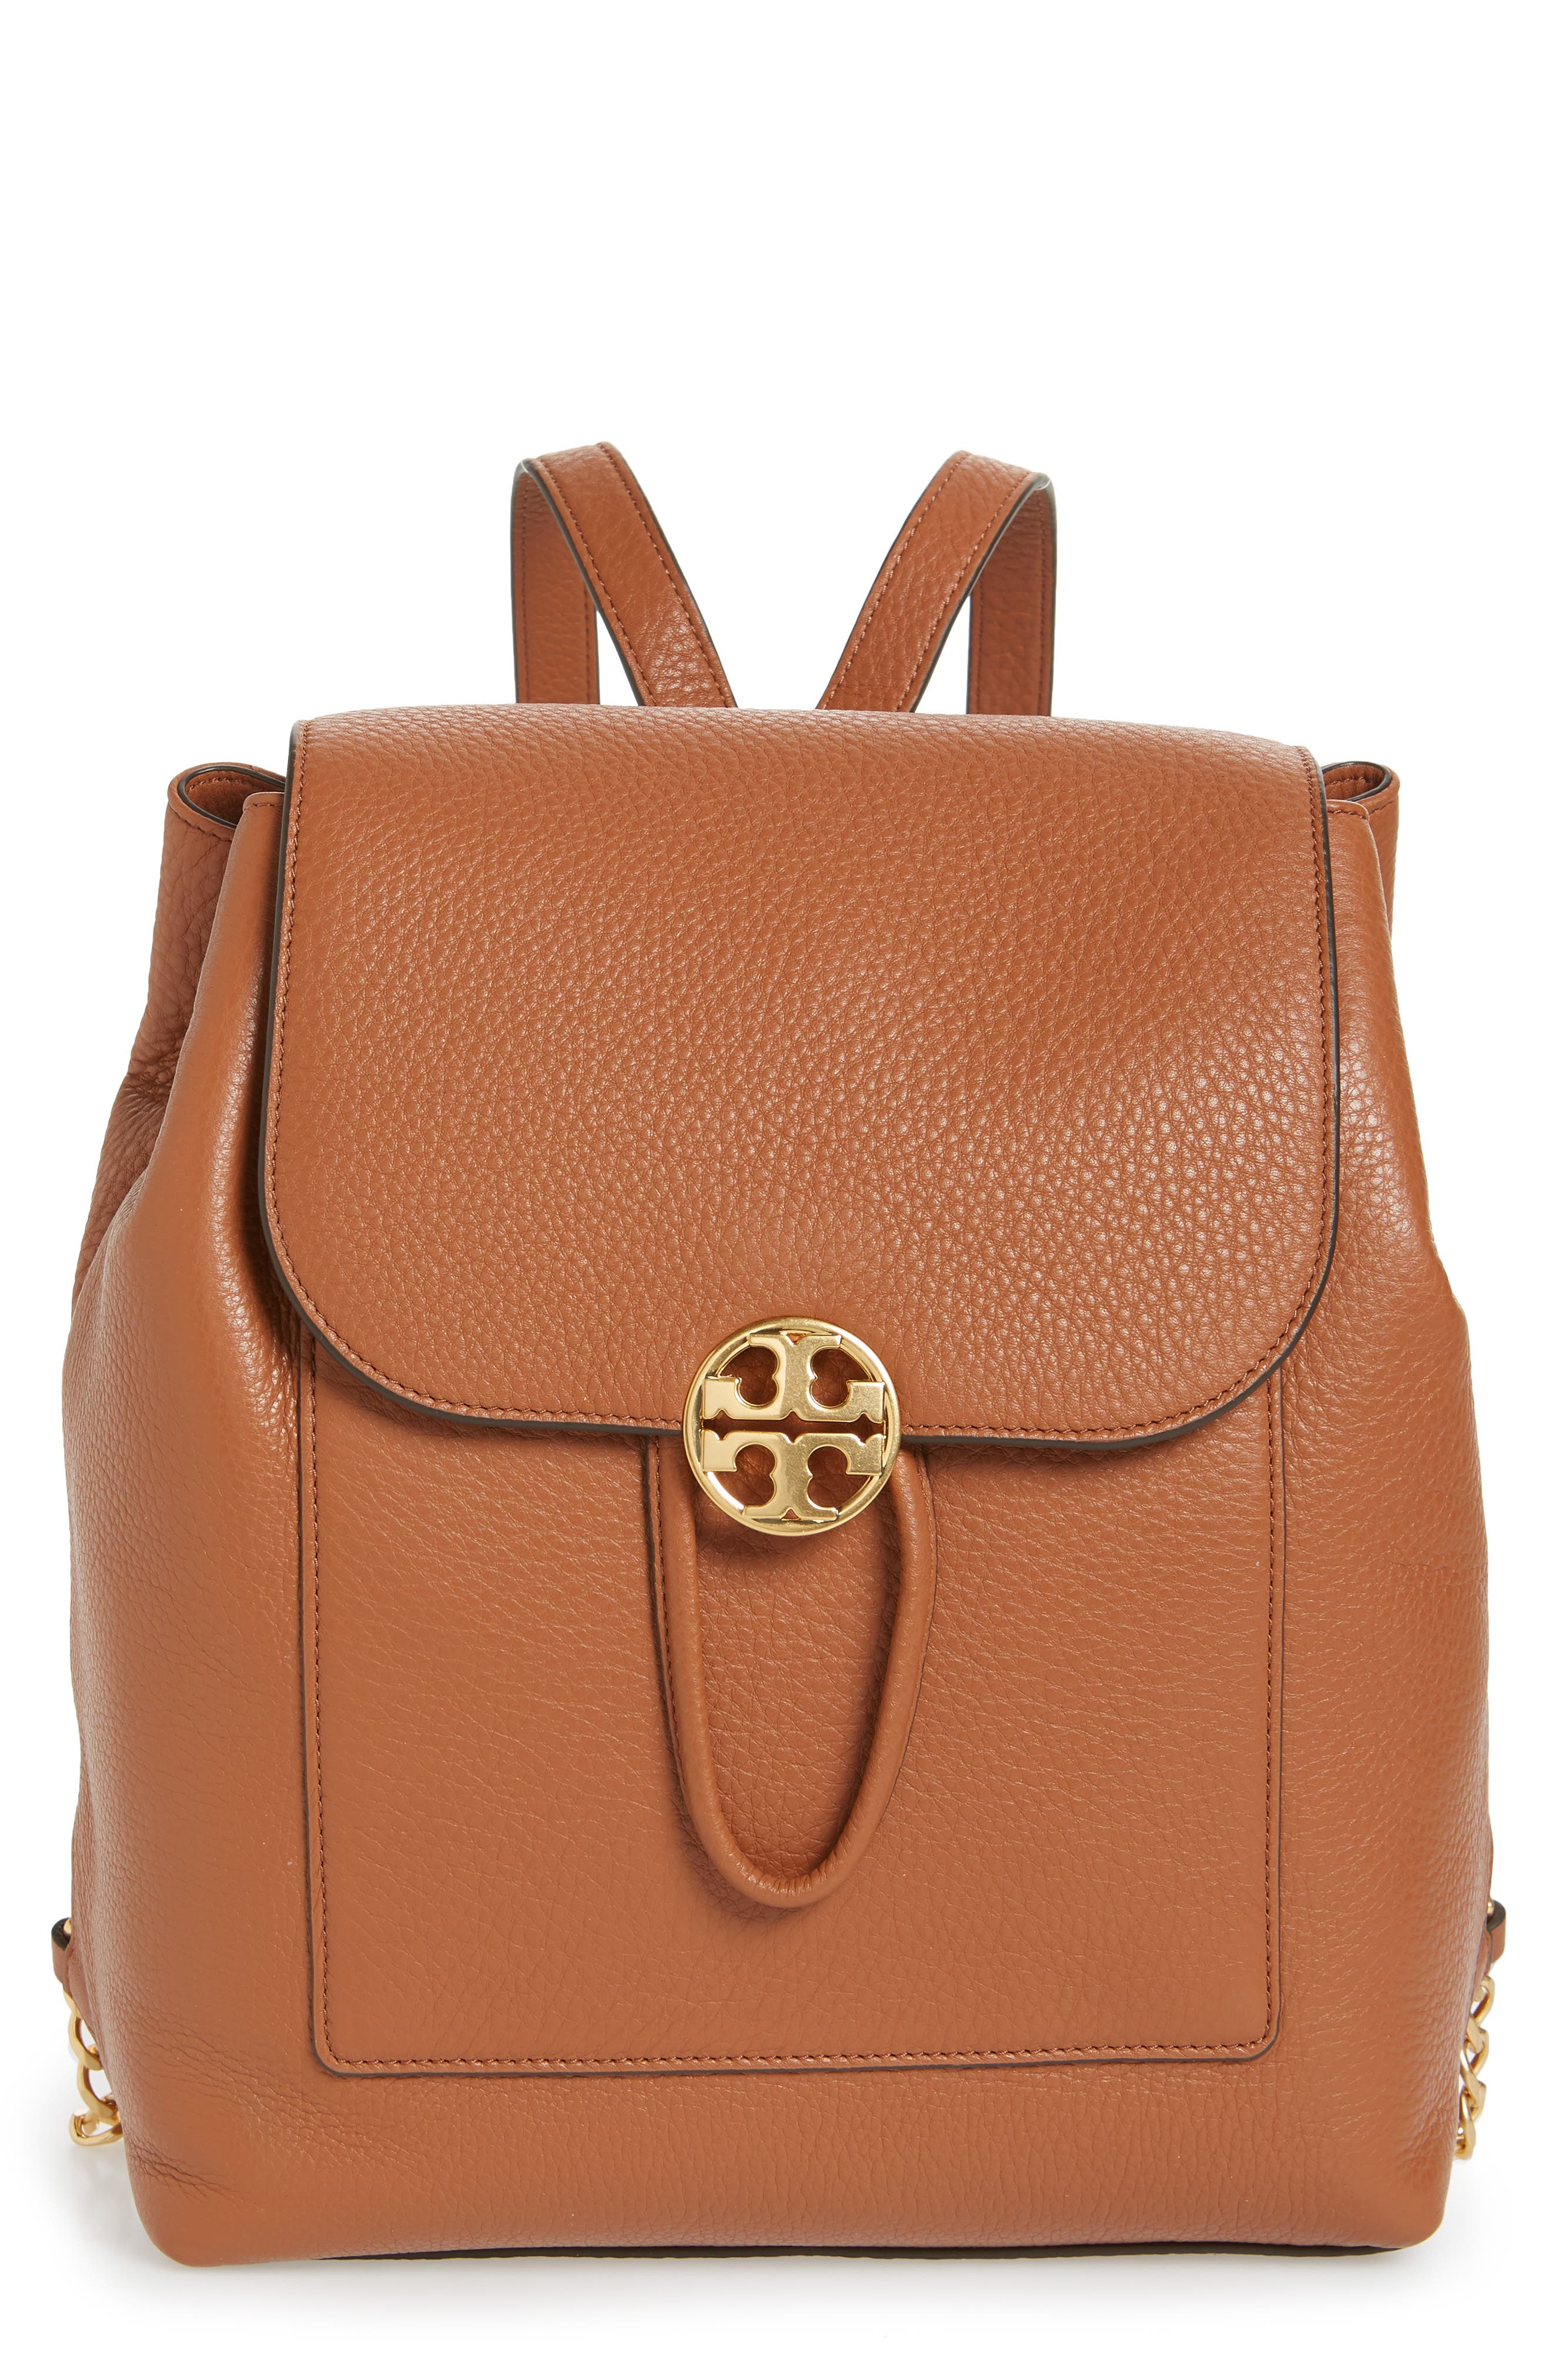 Chelsea Leather Backpack,                         Main,                         color, Classic Tan